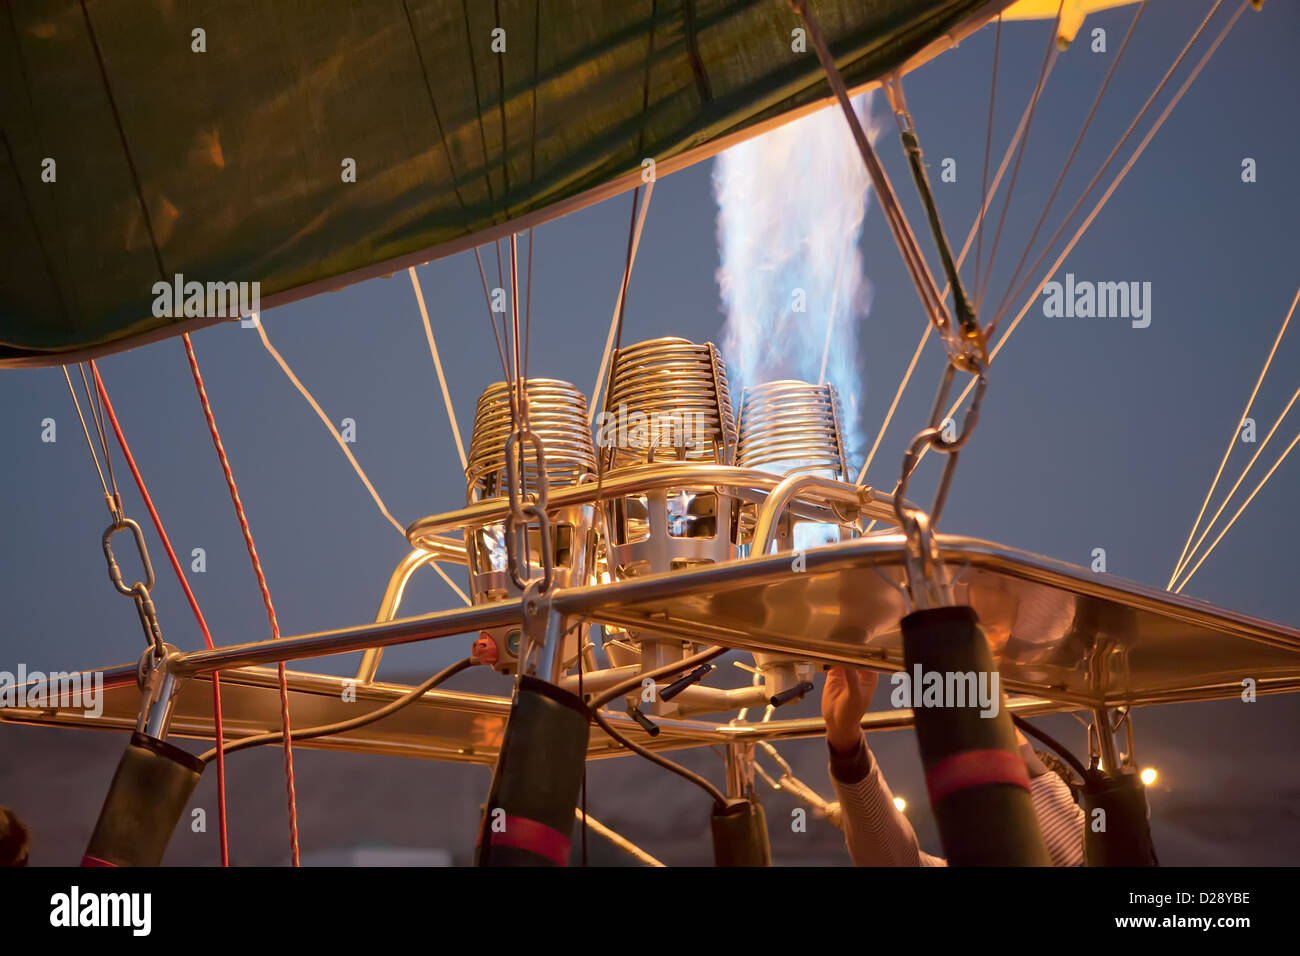 Detail of hot air balloon being inflated - Stock Image